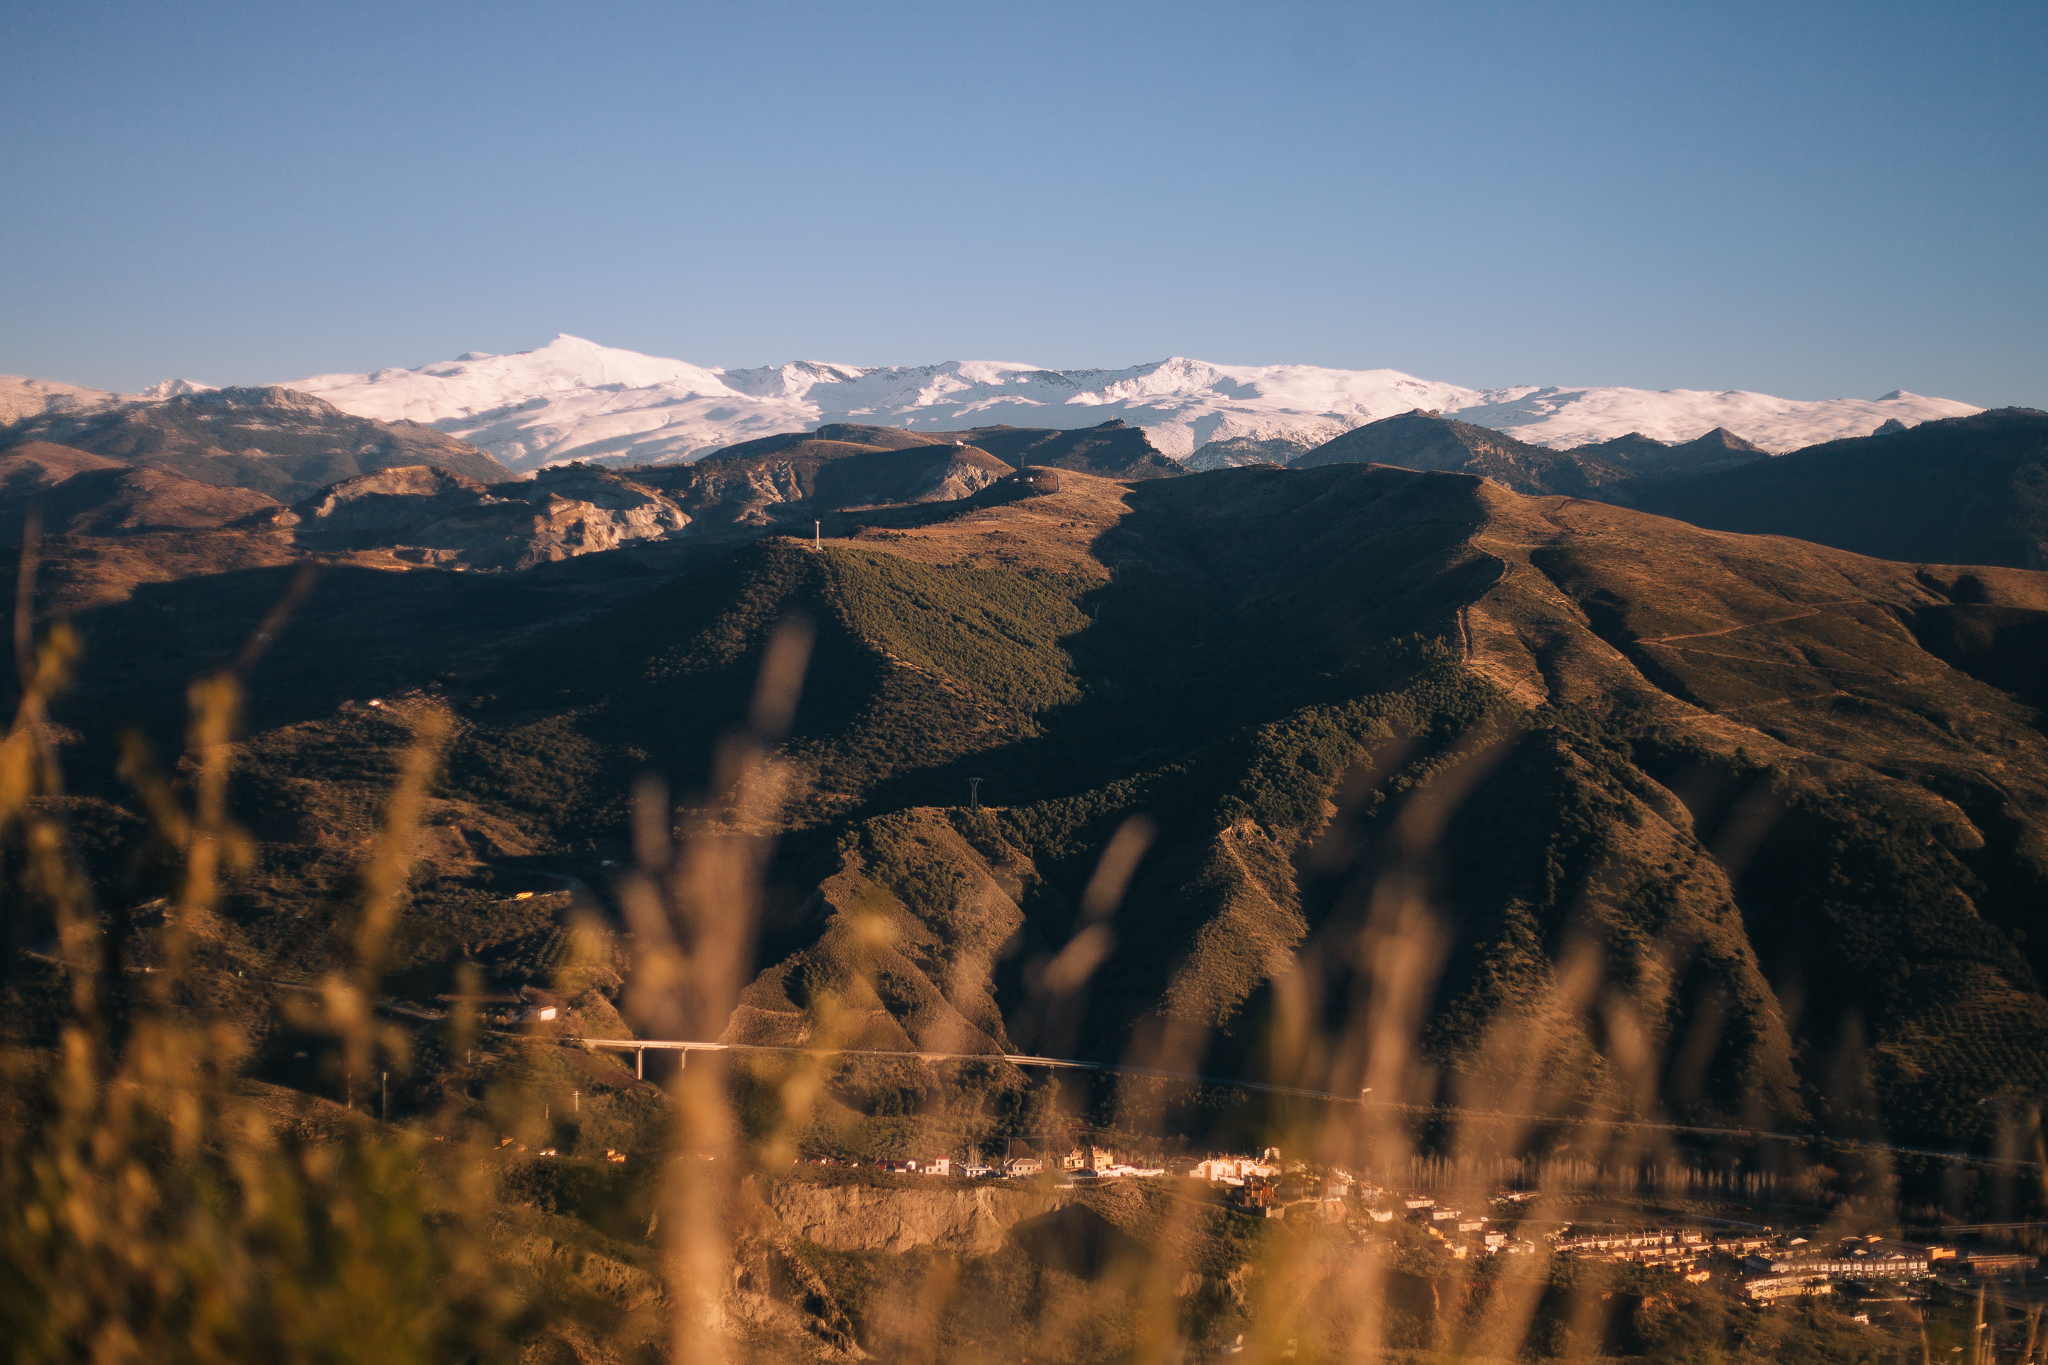 Aiming high: this is the Sierra Nevada, where the running race will be